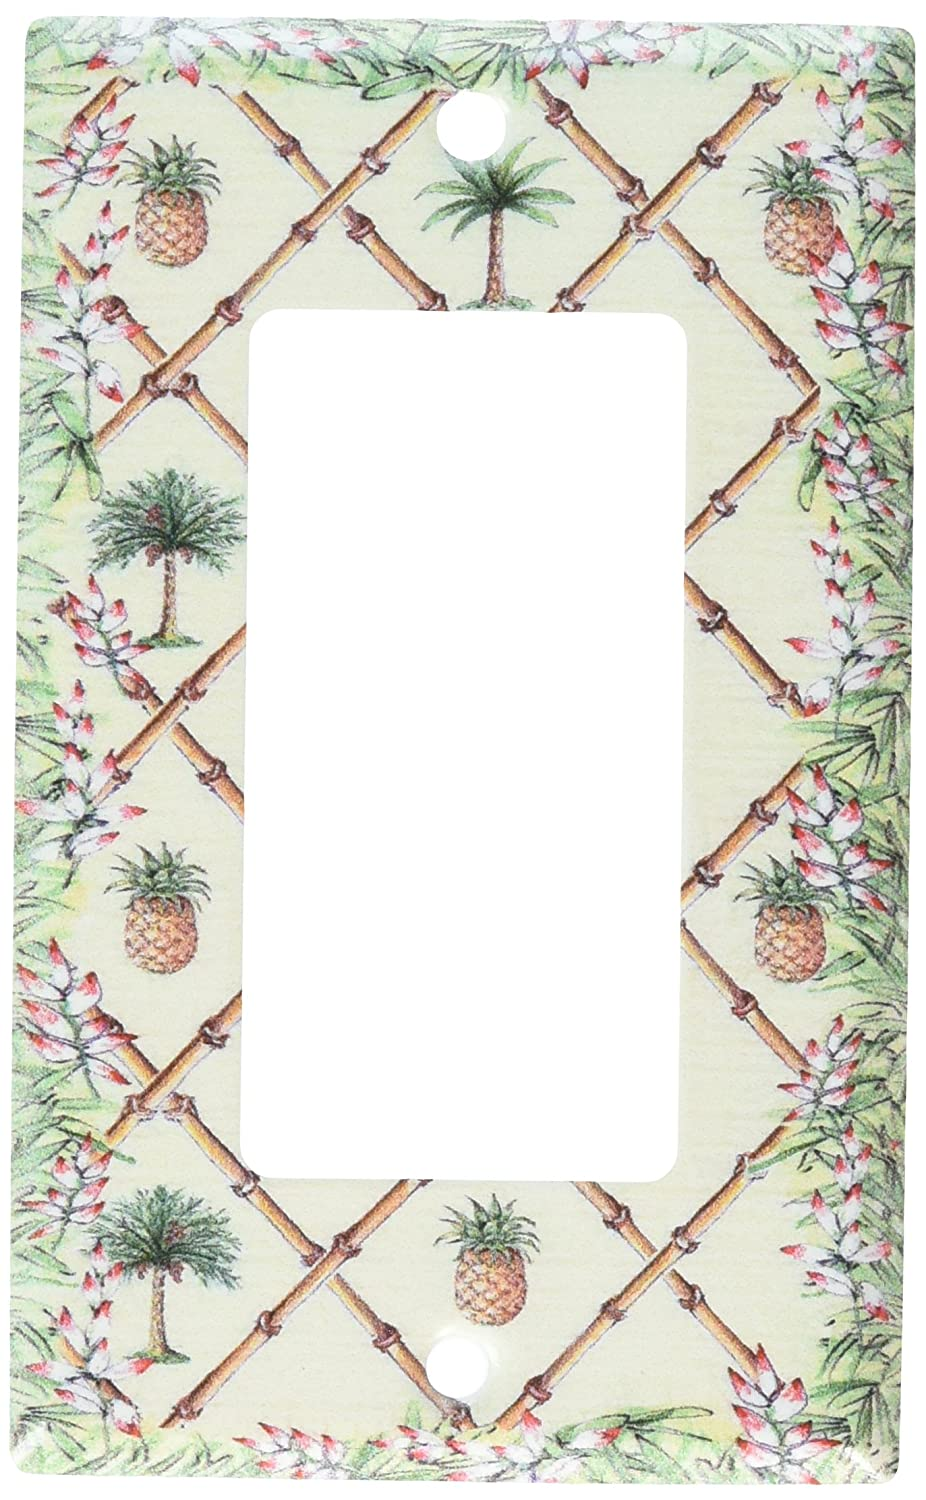 Art Plates Double Toggle D367-plate Bahama Pineapple Switch Plate